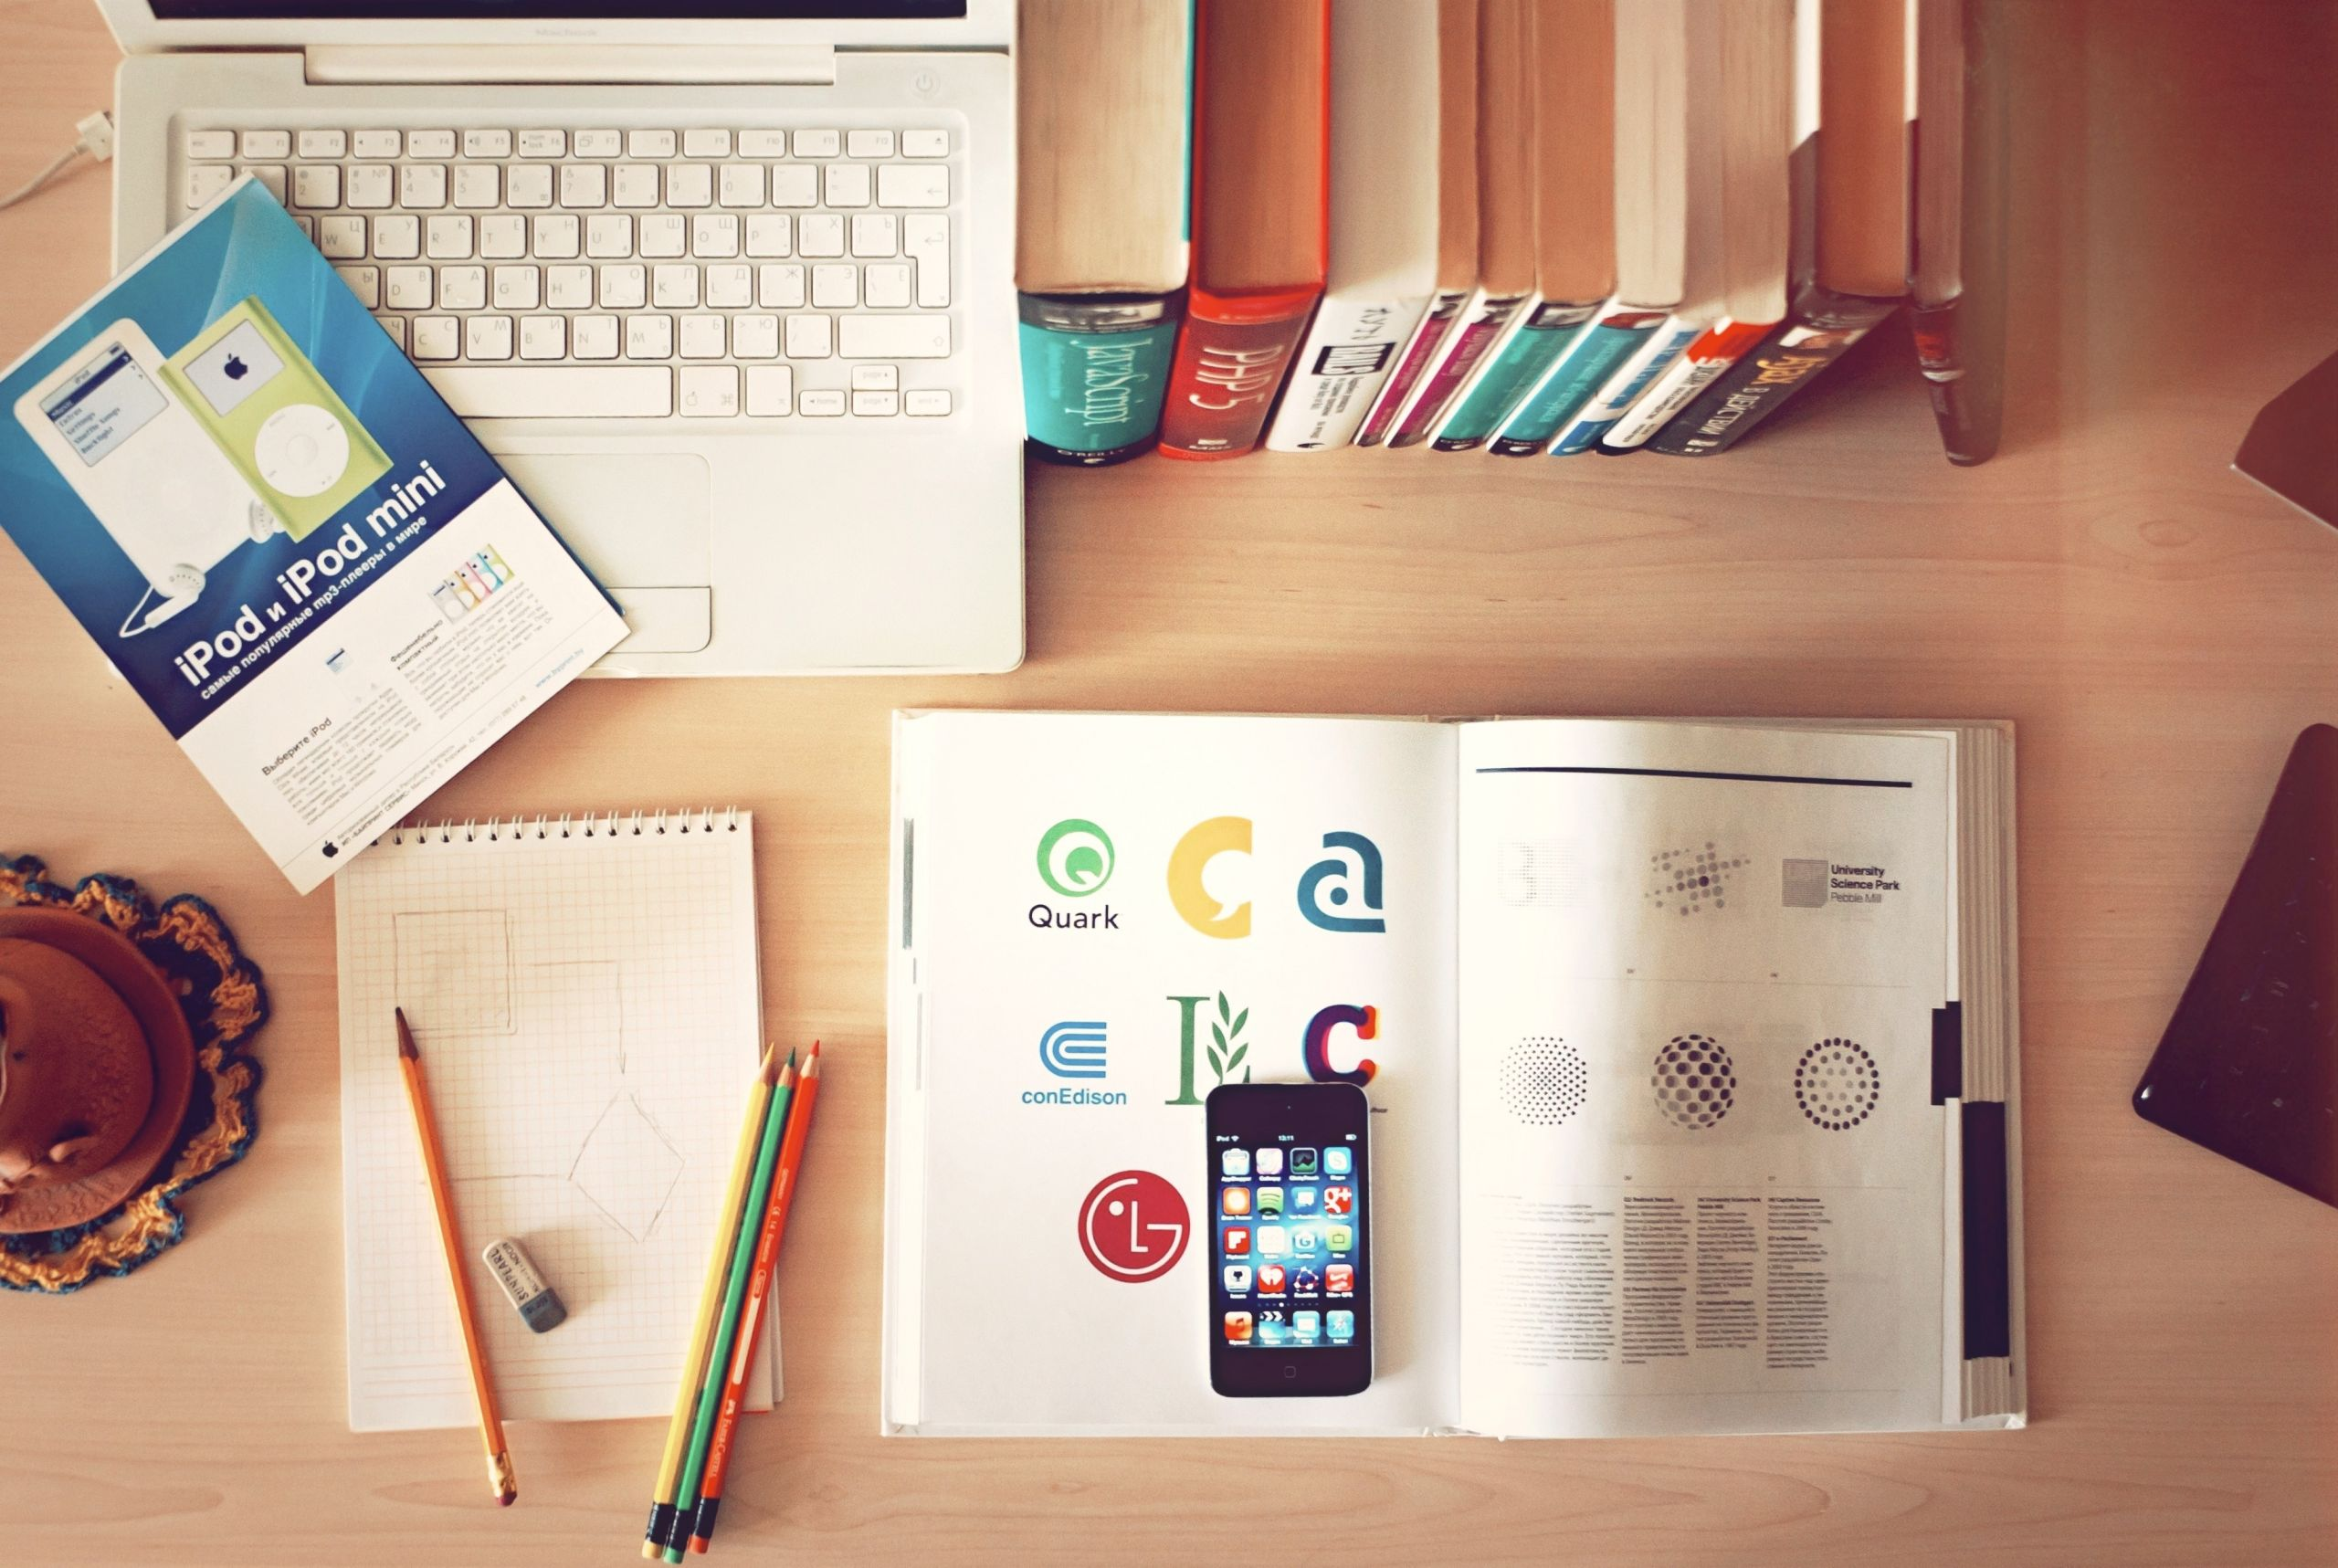 Desk with books, phone, laptop, notebook and stationery